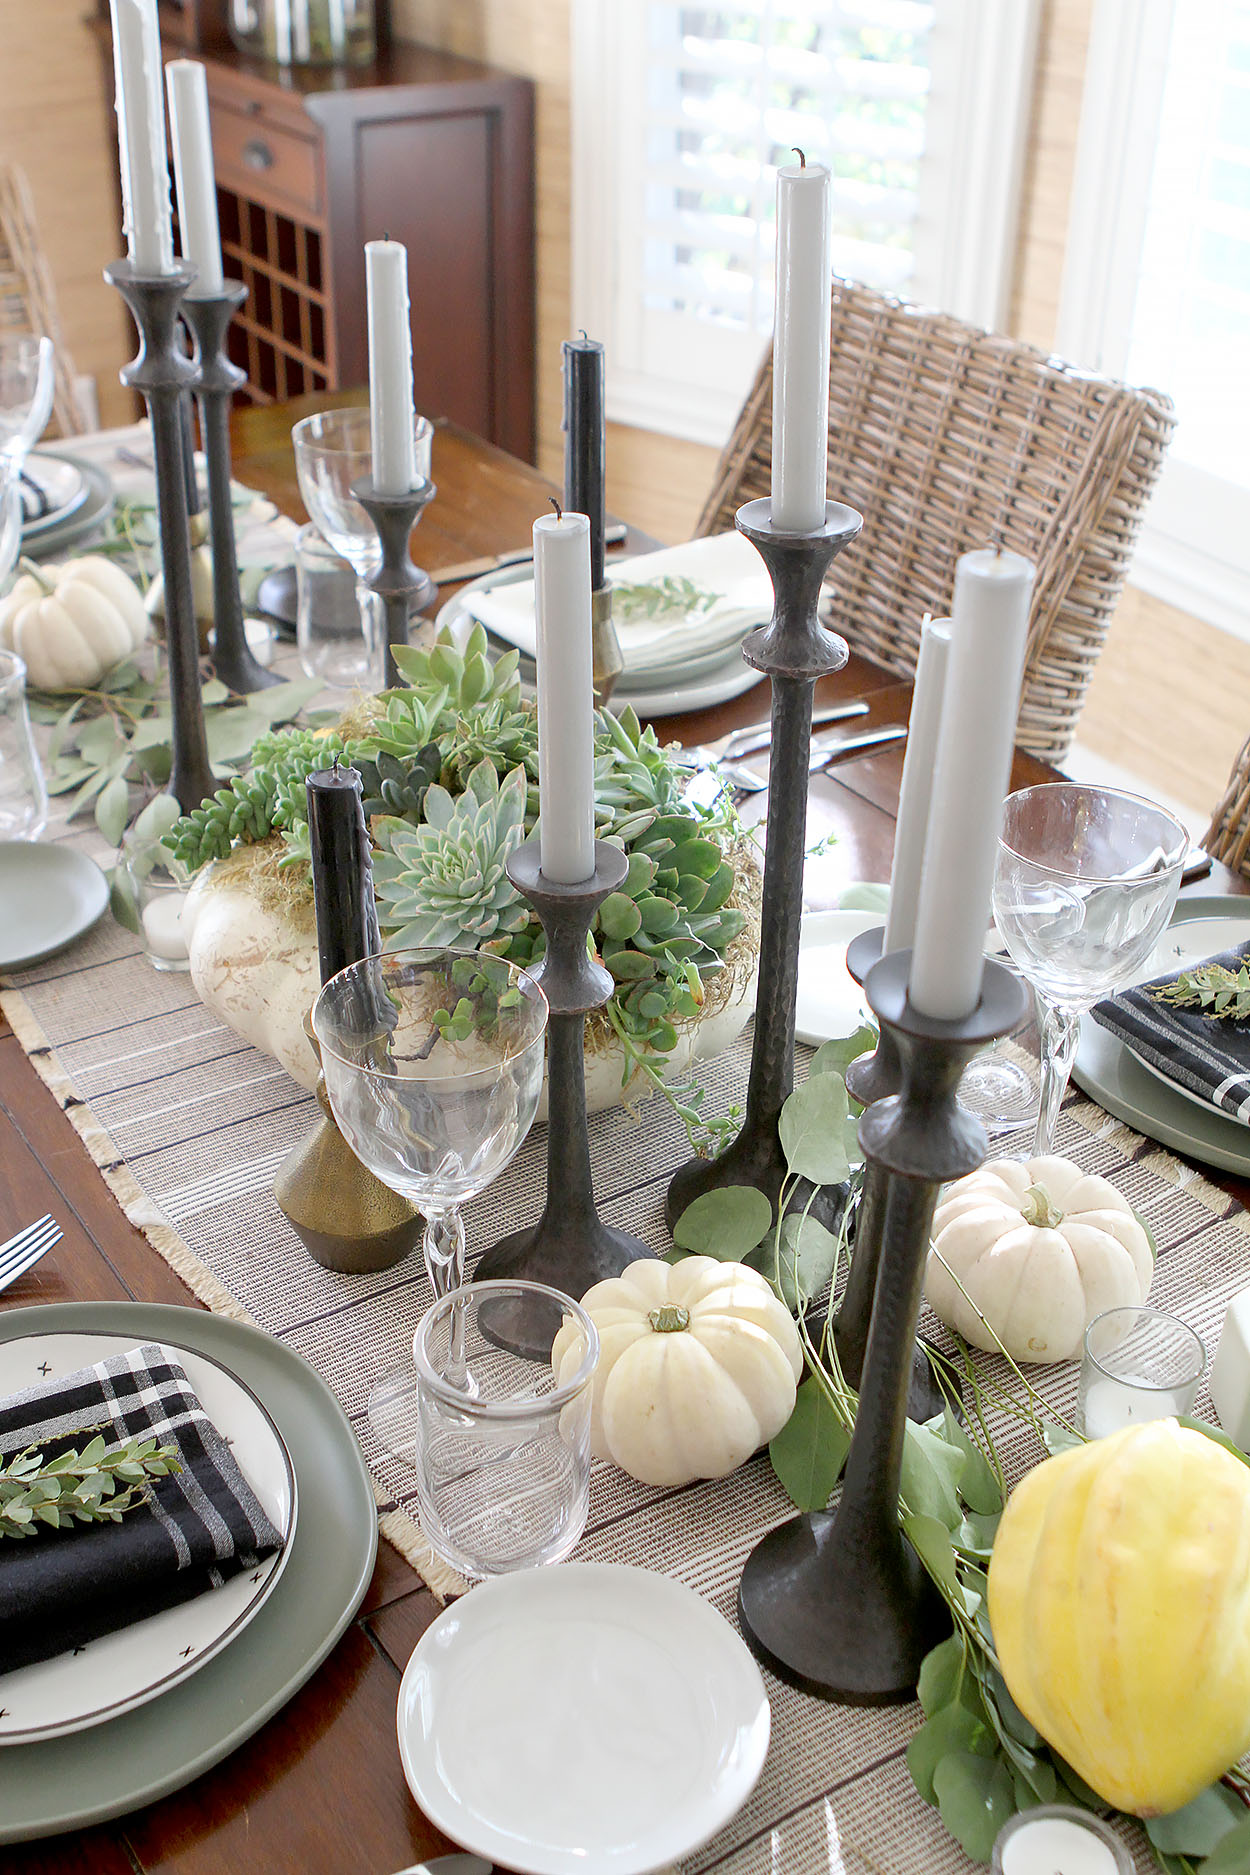 A holiday table set with a table runner, candles, pumpkins, and greenery